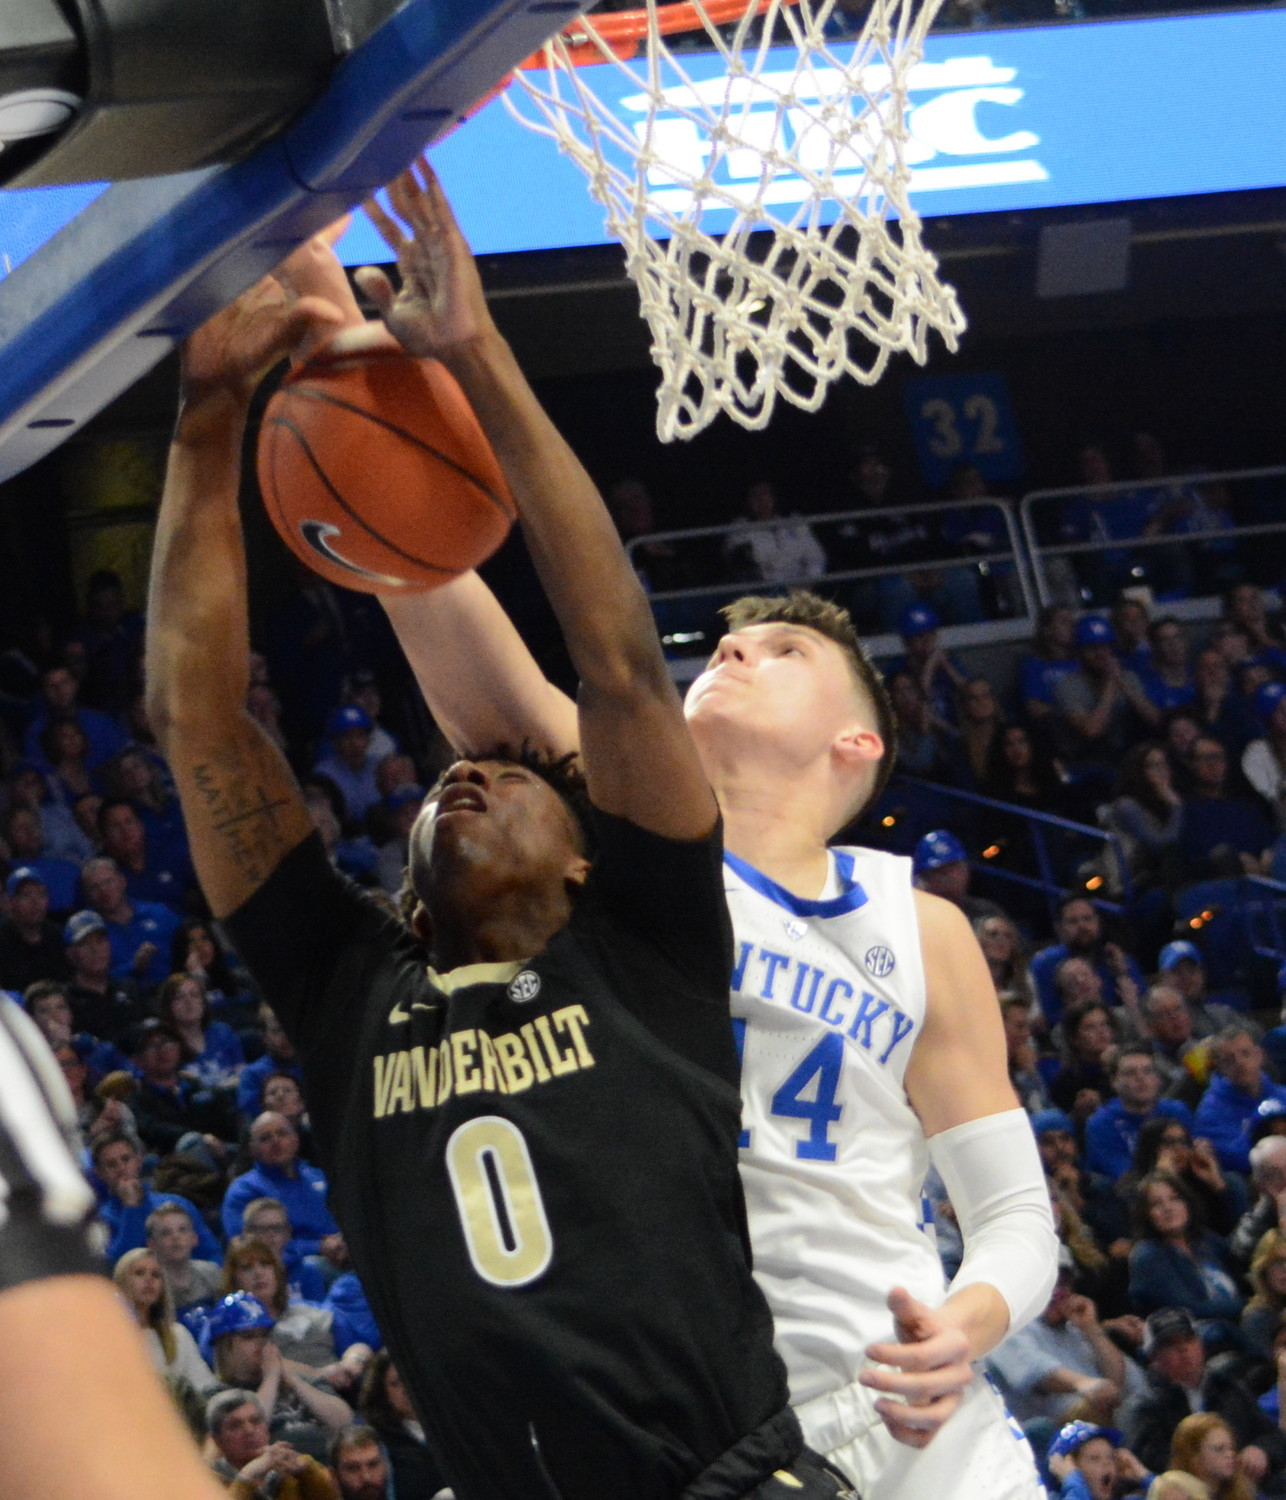 Kentucky guard Tyler Herro blocks a shot in a win over Vanderbilt earlier this month. Herro was named Southeastern Conference Freshman of the Week Monday. (Kentucky Today/Keith Taylor)